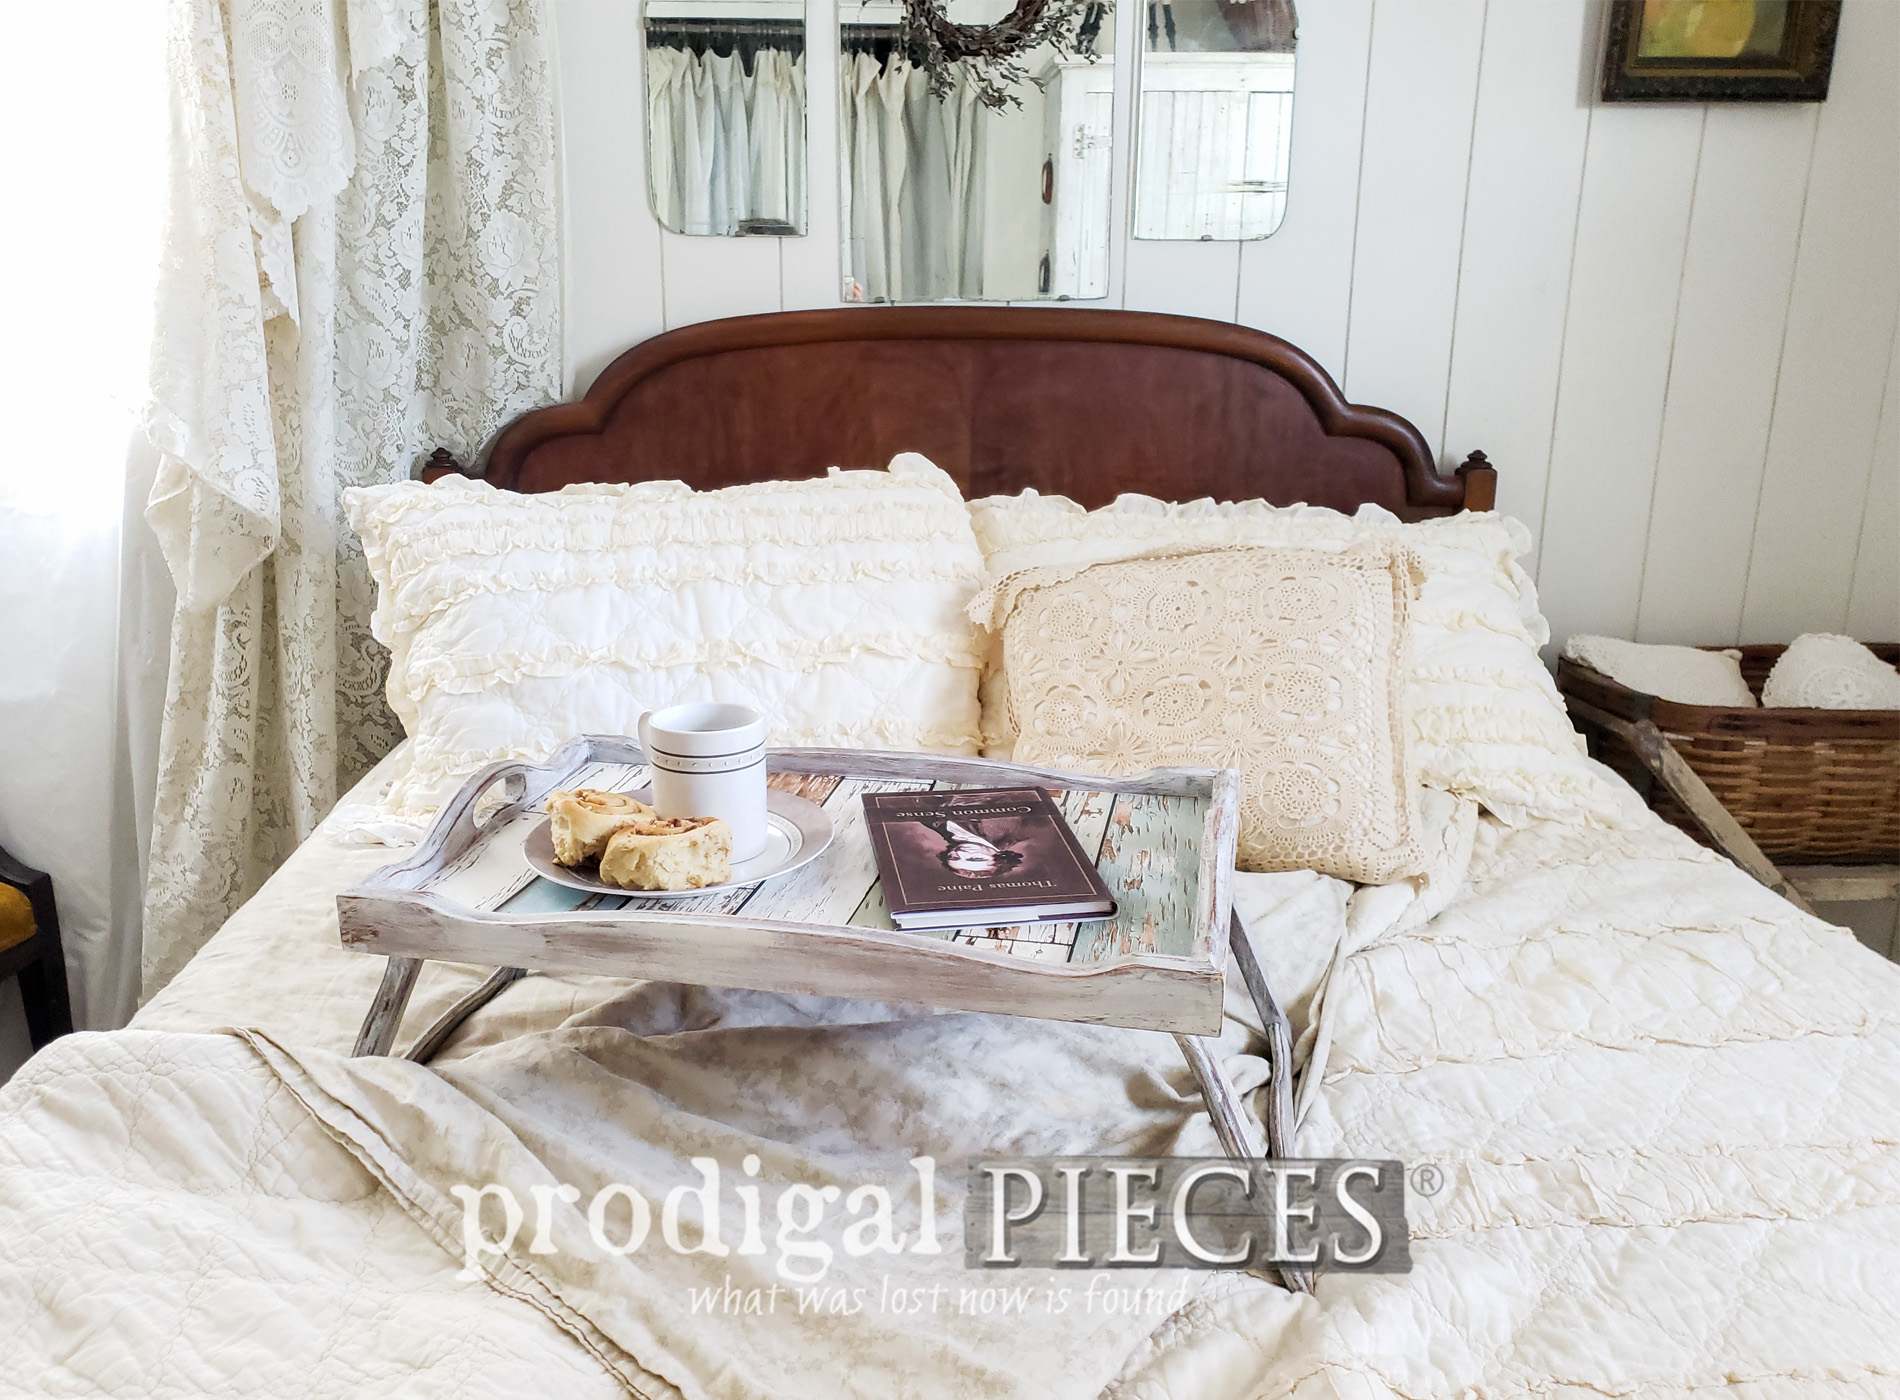 Featured Vintage Bed Tray Makeover into Farmhouse Style by Larissa of Prodigal Pieces | prodigalpieces.com #prodigalpieces #diy #home #handmade #homedecor #vintage #homedecorideas #farmhouse